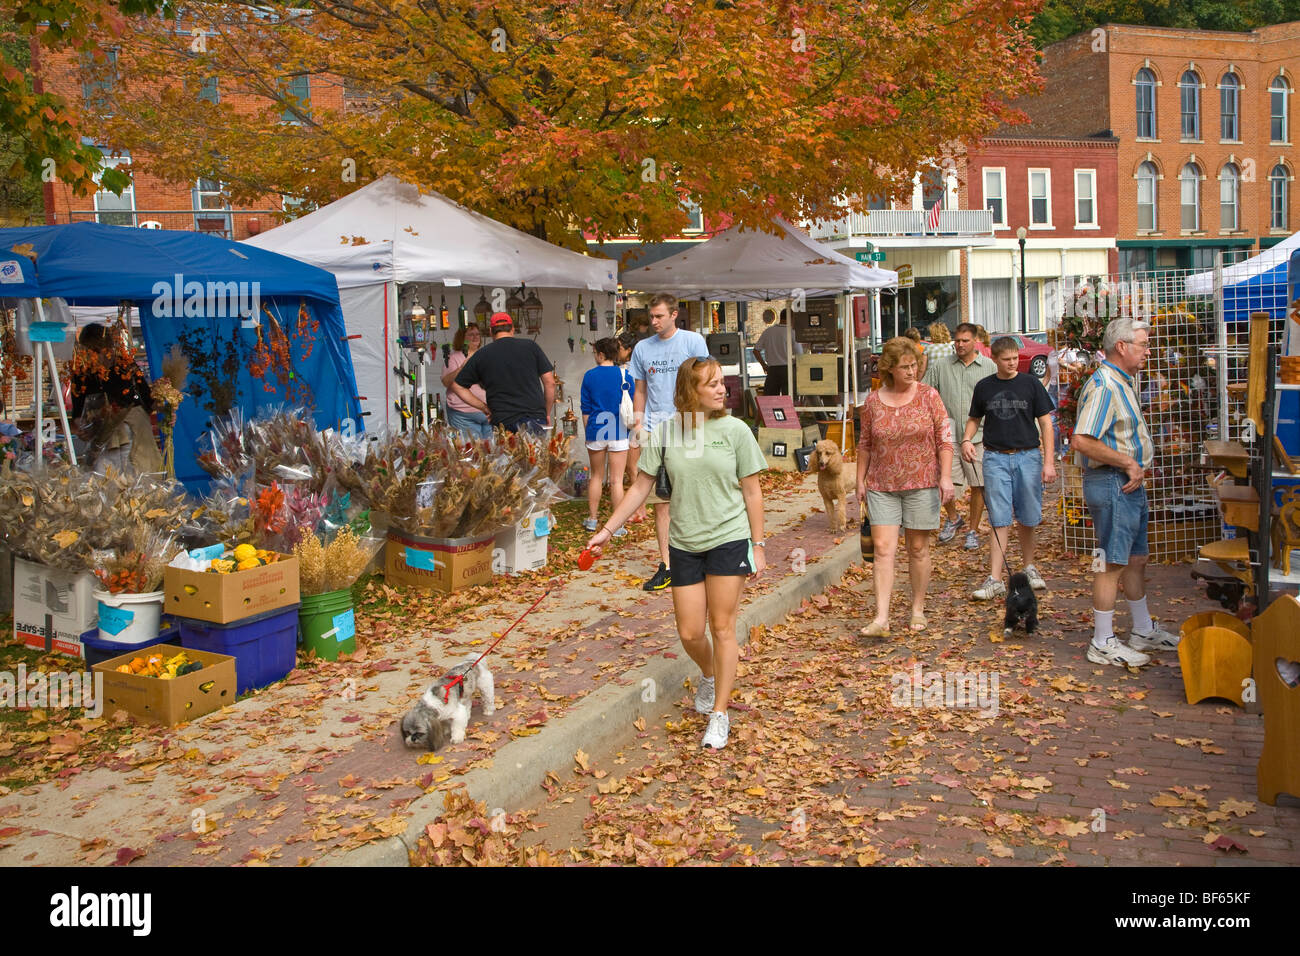 Vendors And Shoppers At The Annual Fall Arts Craft Festival In The Stock Photo Alamy